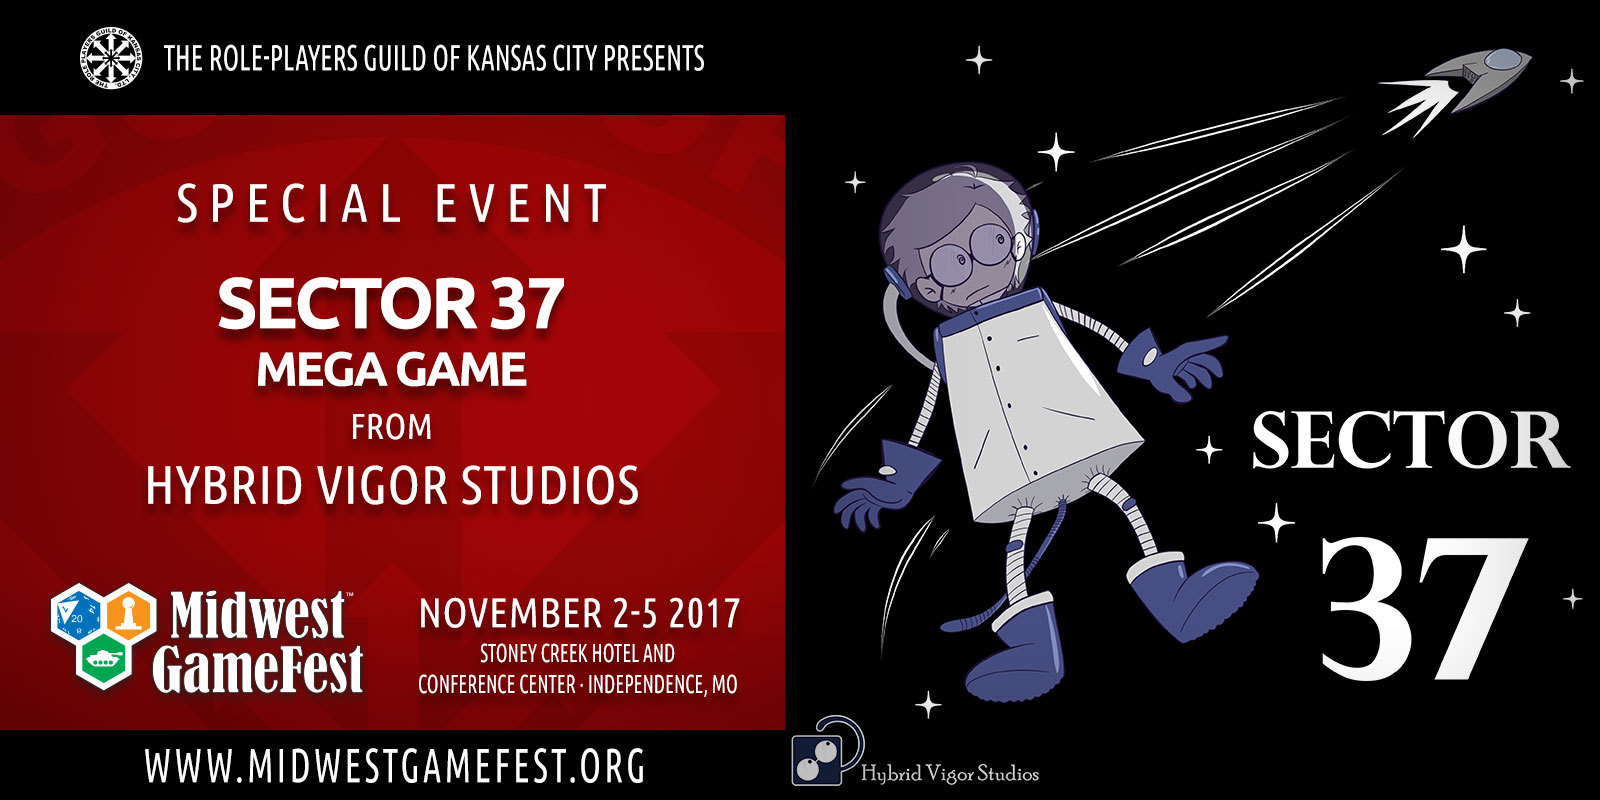 Special Event Sector 37 Mega Game